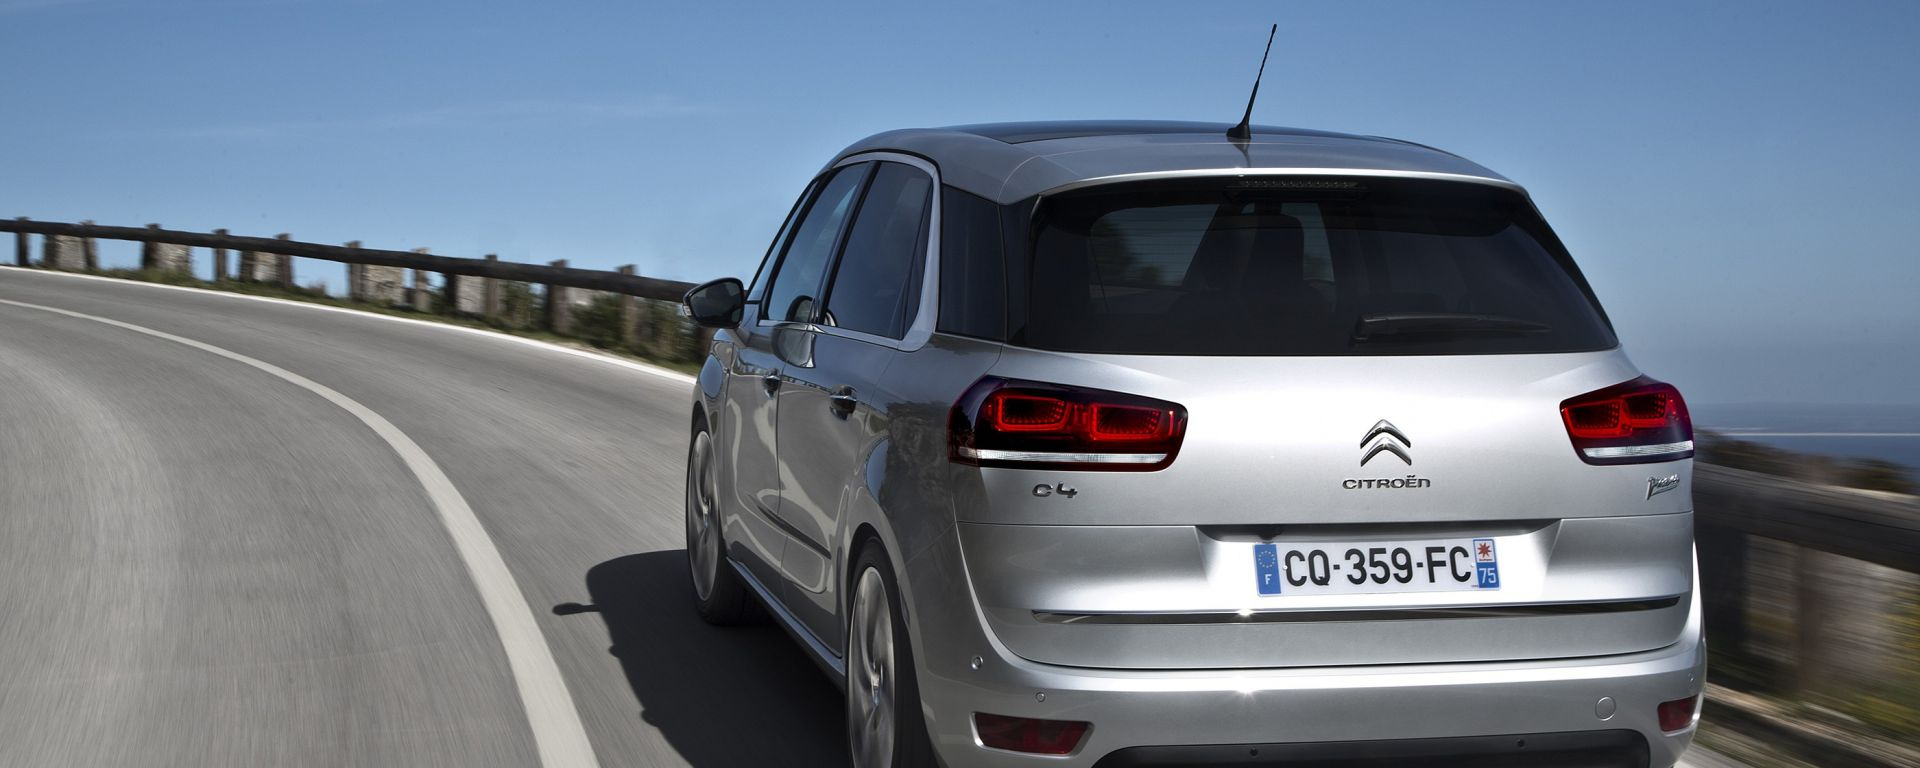 Citroën C4 Picasso 1.6 BlueHDi 120 cv EAT6